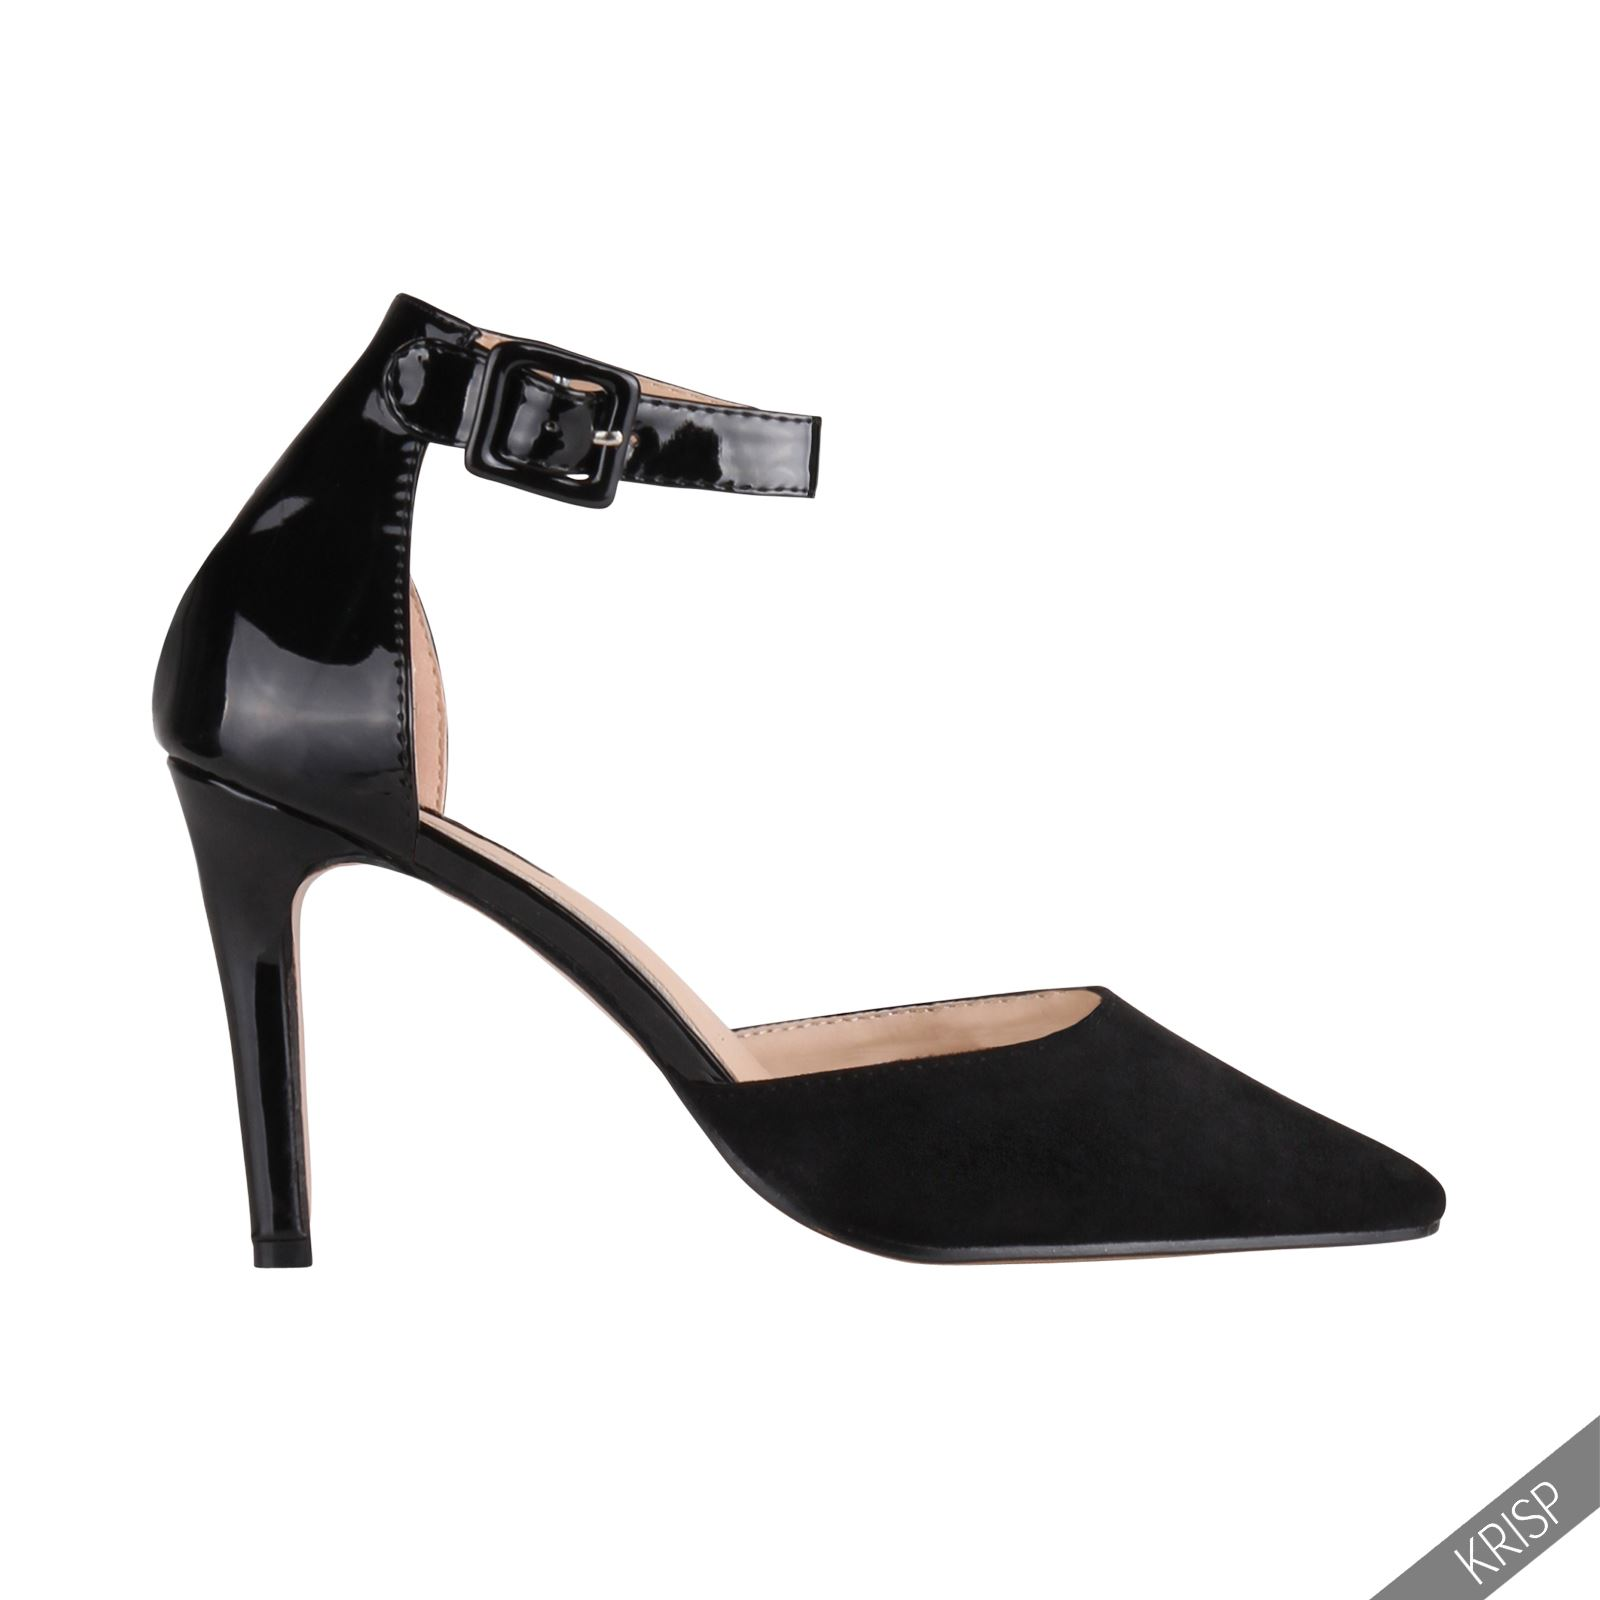 Find great deals on eBay for shoes ankle strap. Shop with confidence.